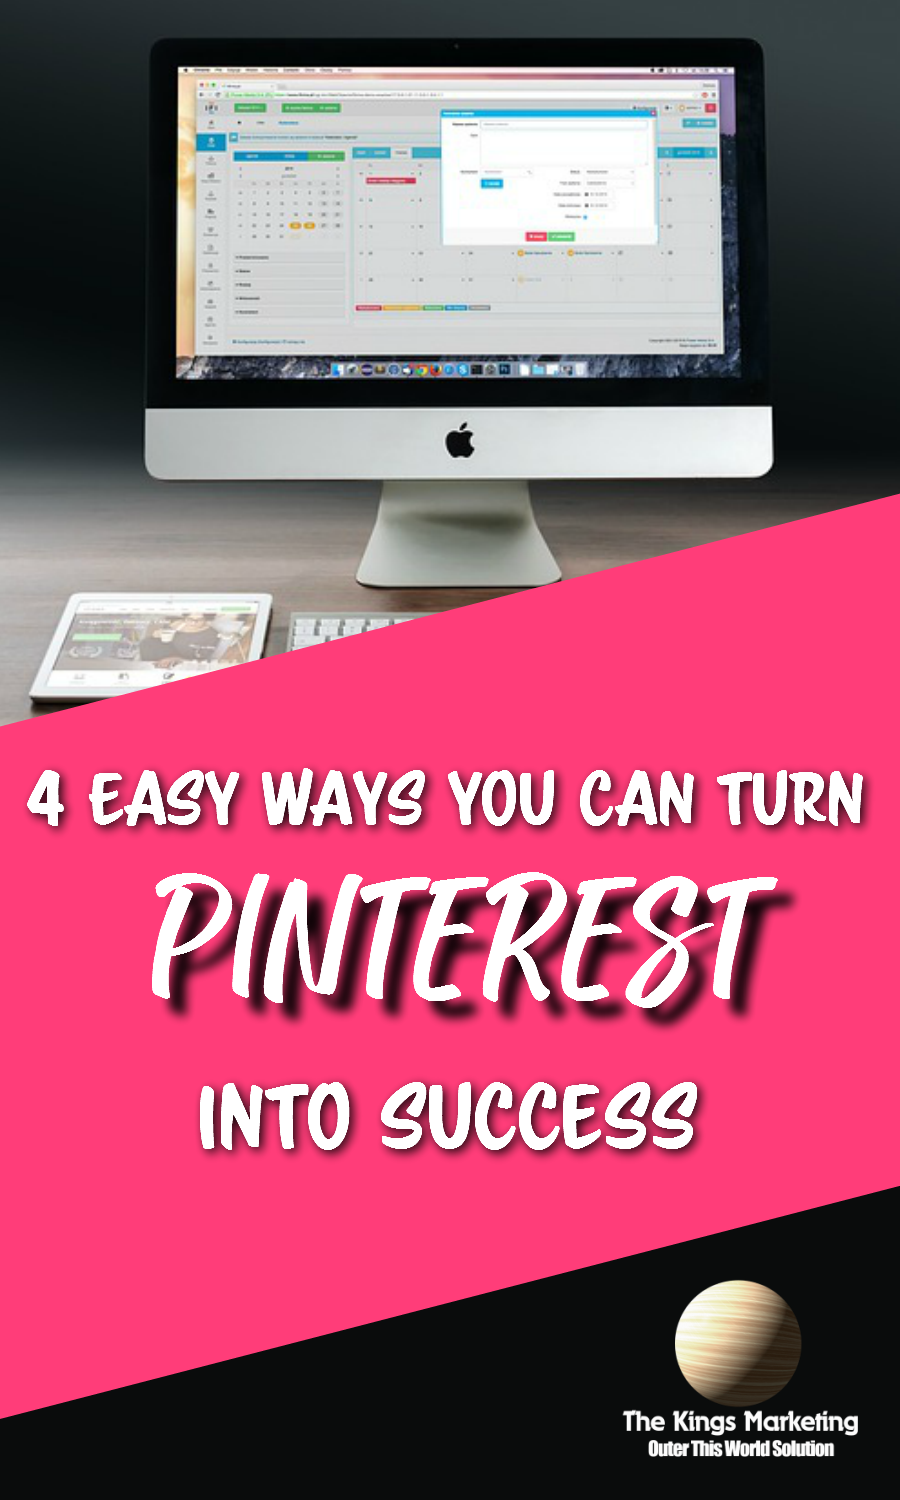 4 Easy Ways You Can Turn PINTEREST Into Success1